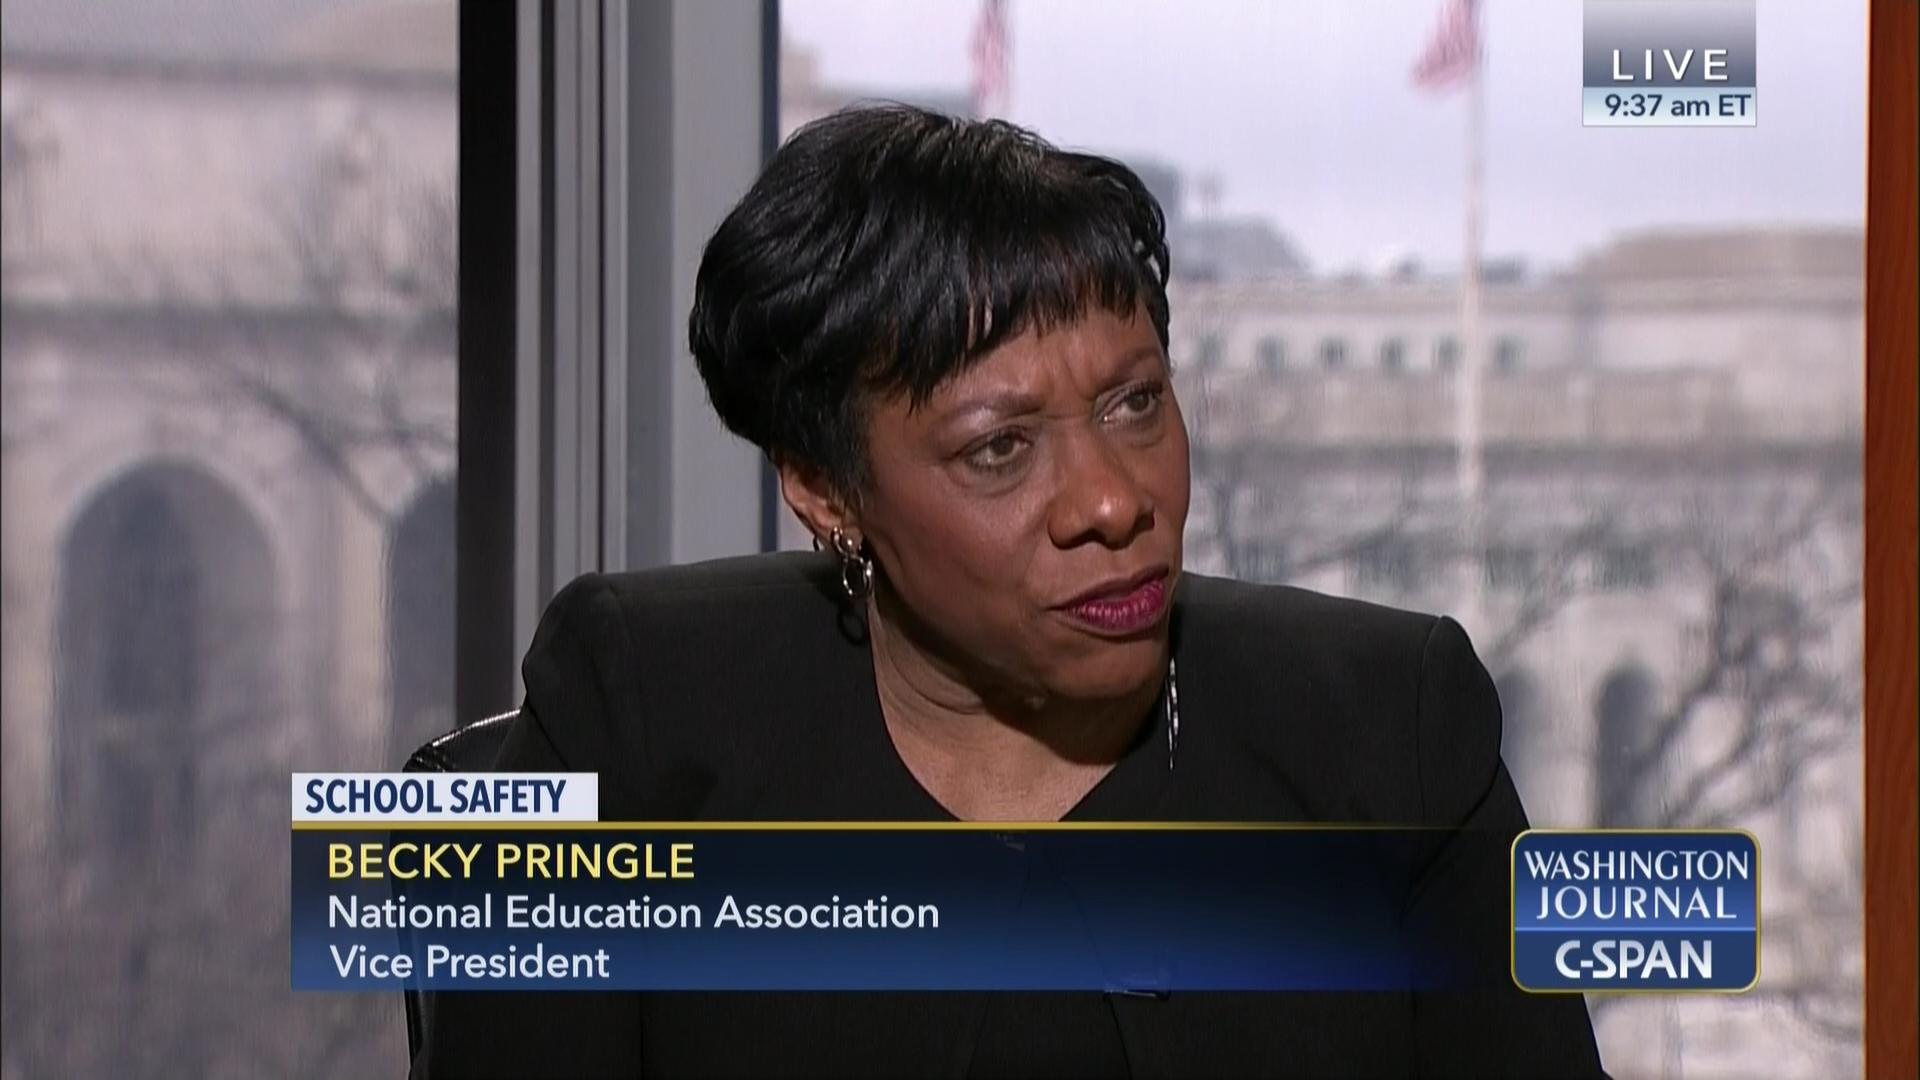 Becky Pringle on School Safety